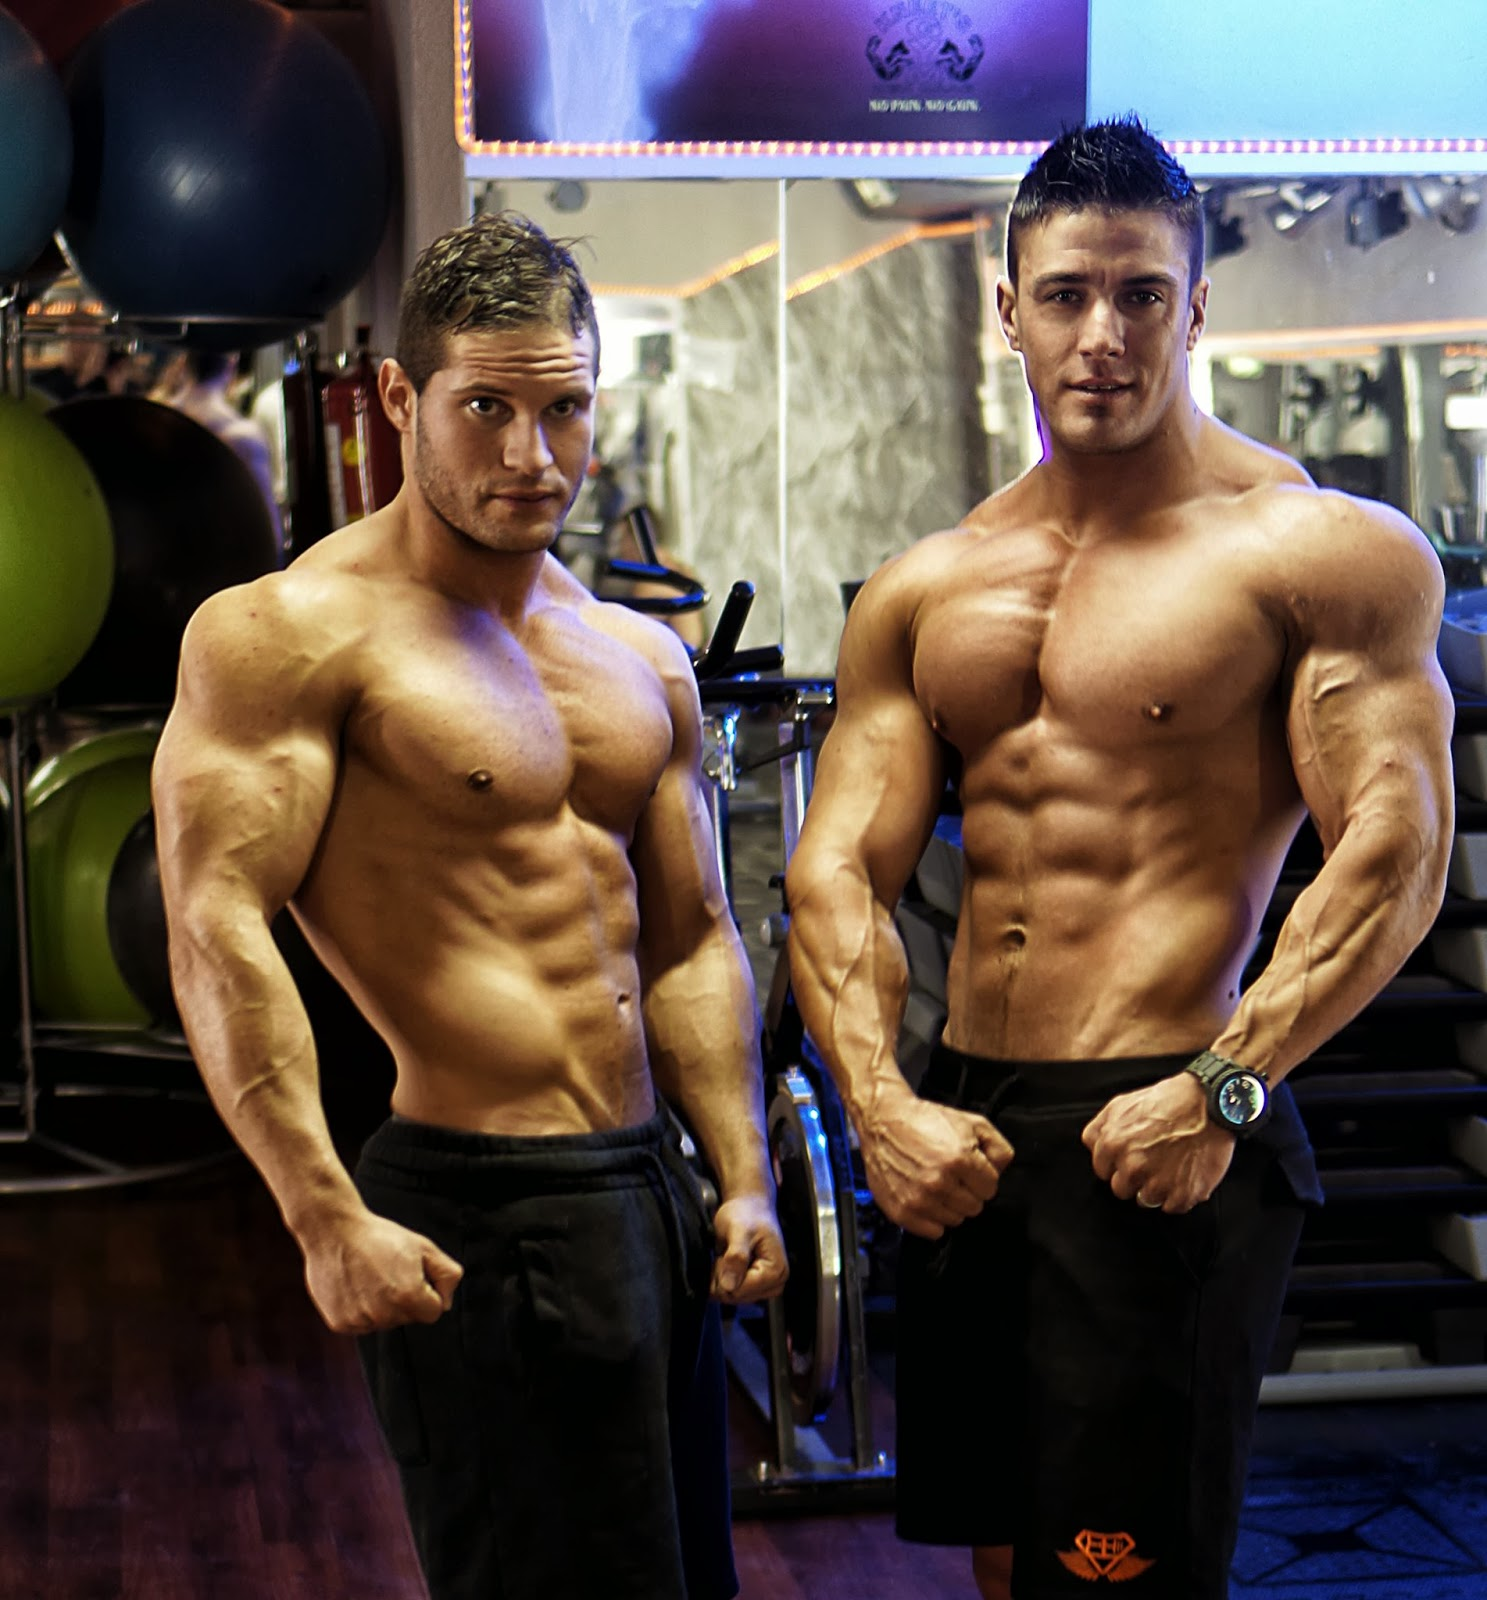 Daily Bodybuilding Motivation: Best Fitness Models in the